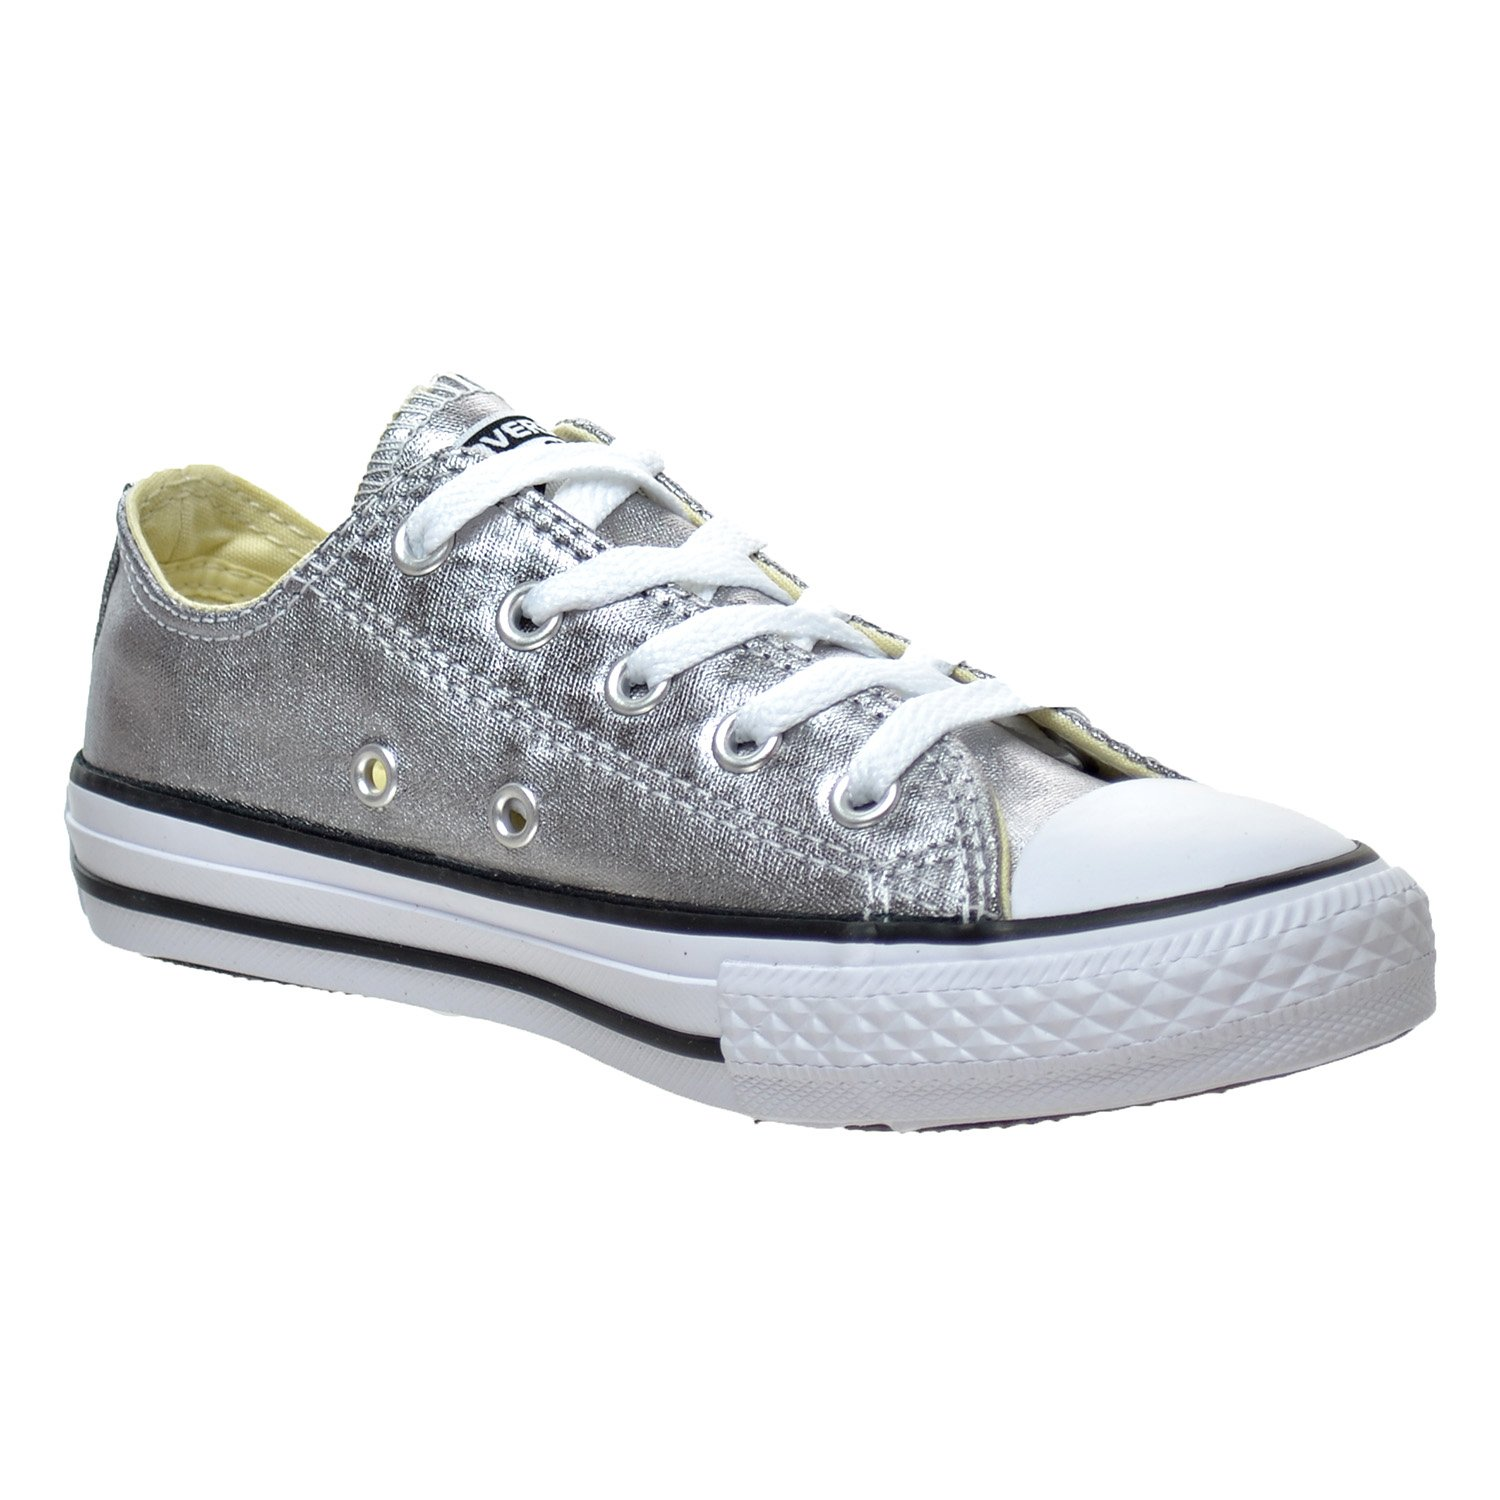 5cc770ecae08 Converse Kids Chuck Taylor All Star Canvas Low Top Sneaker CONV-3J235